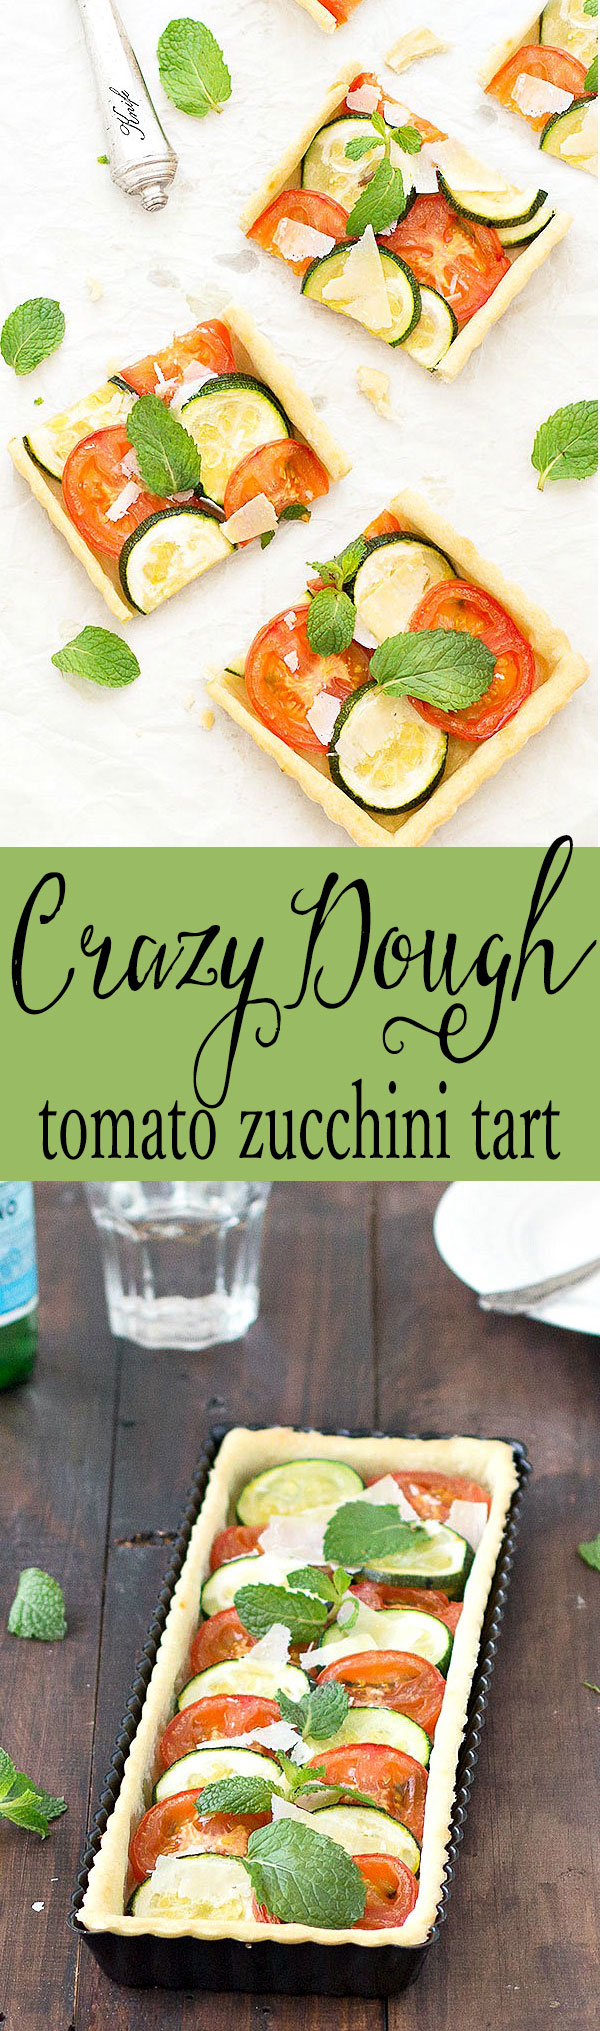 Tomato zucchini tart made with crazy dough. Only 4 ingredients to made the dough, no butter, no eggs. Suitable for vegetarian and vegans.